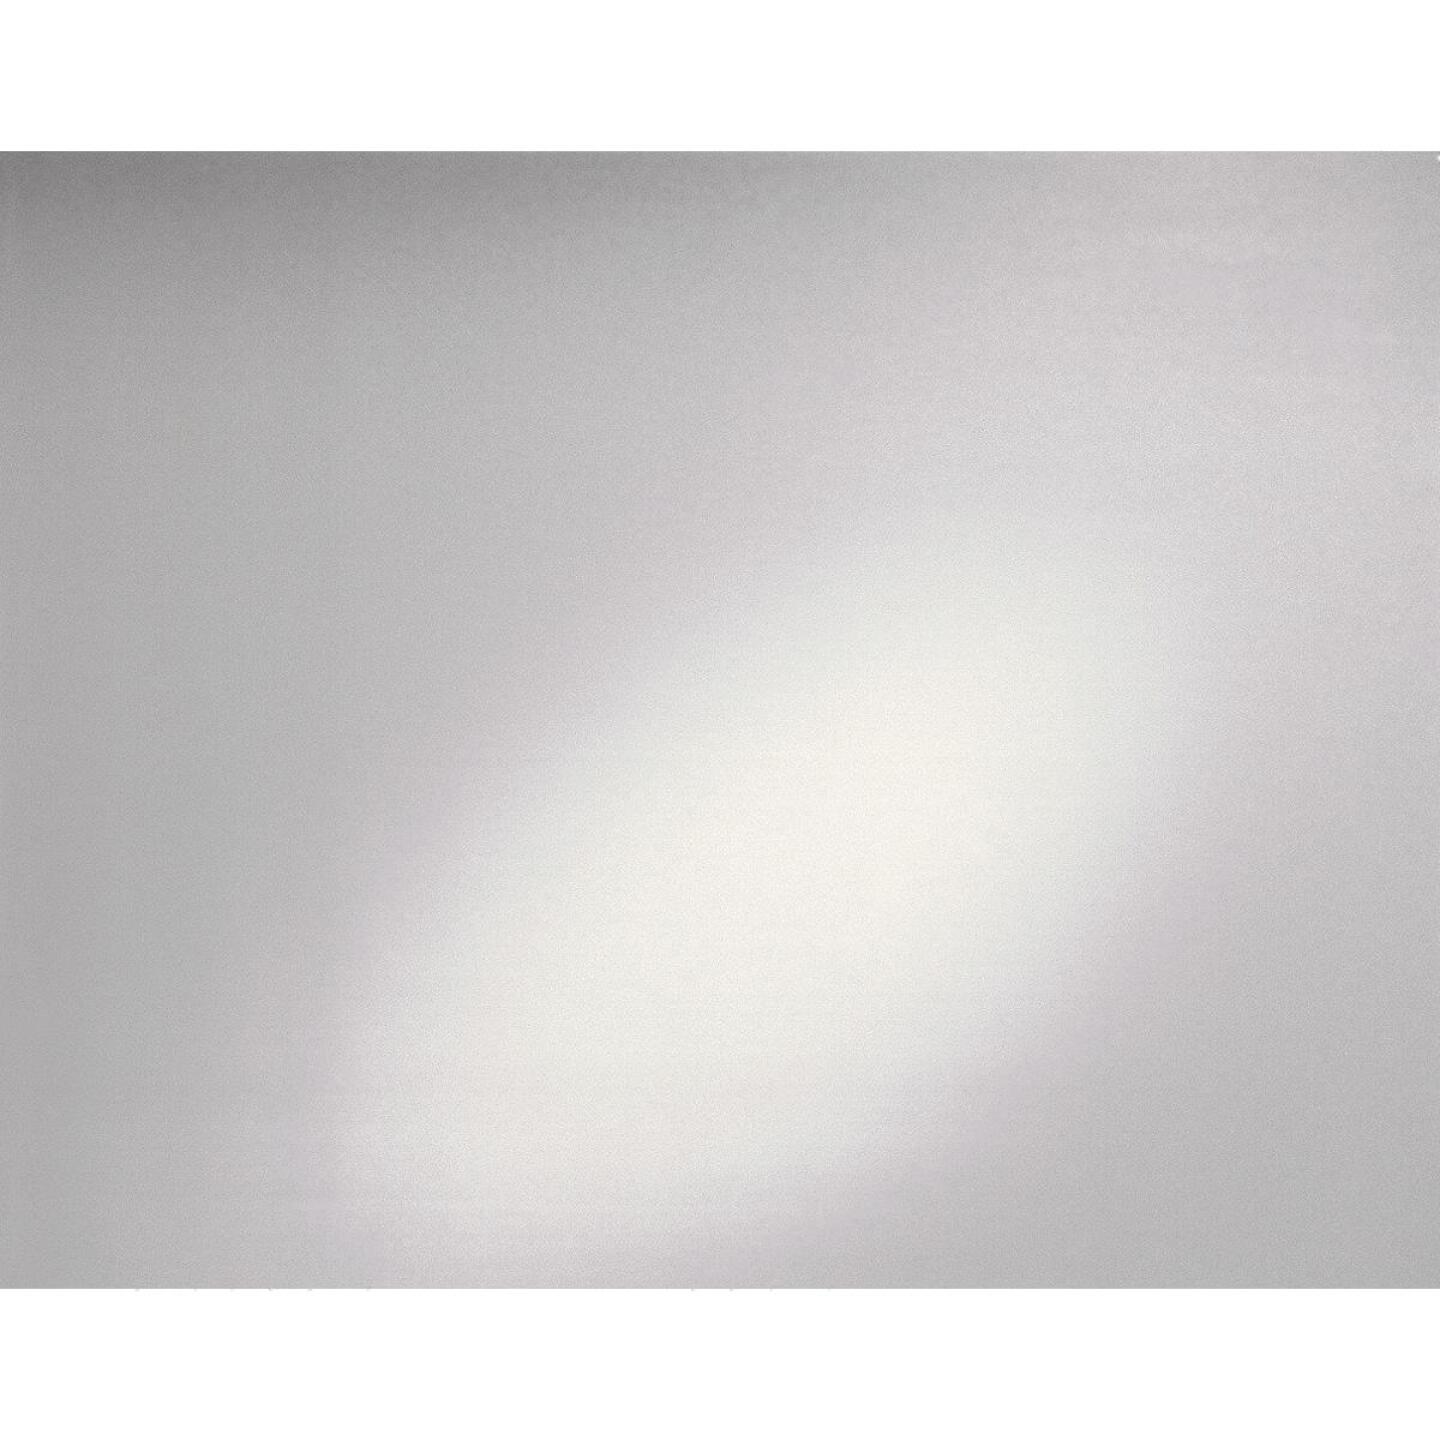 D-C-Fix 26 In. x 59 In. Frosted Static Window Film Image 5